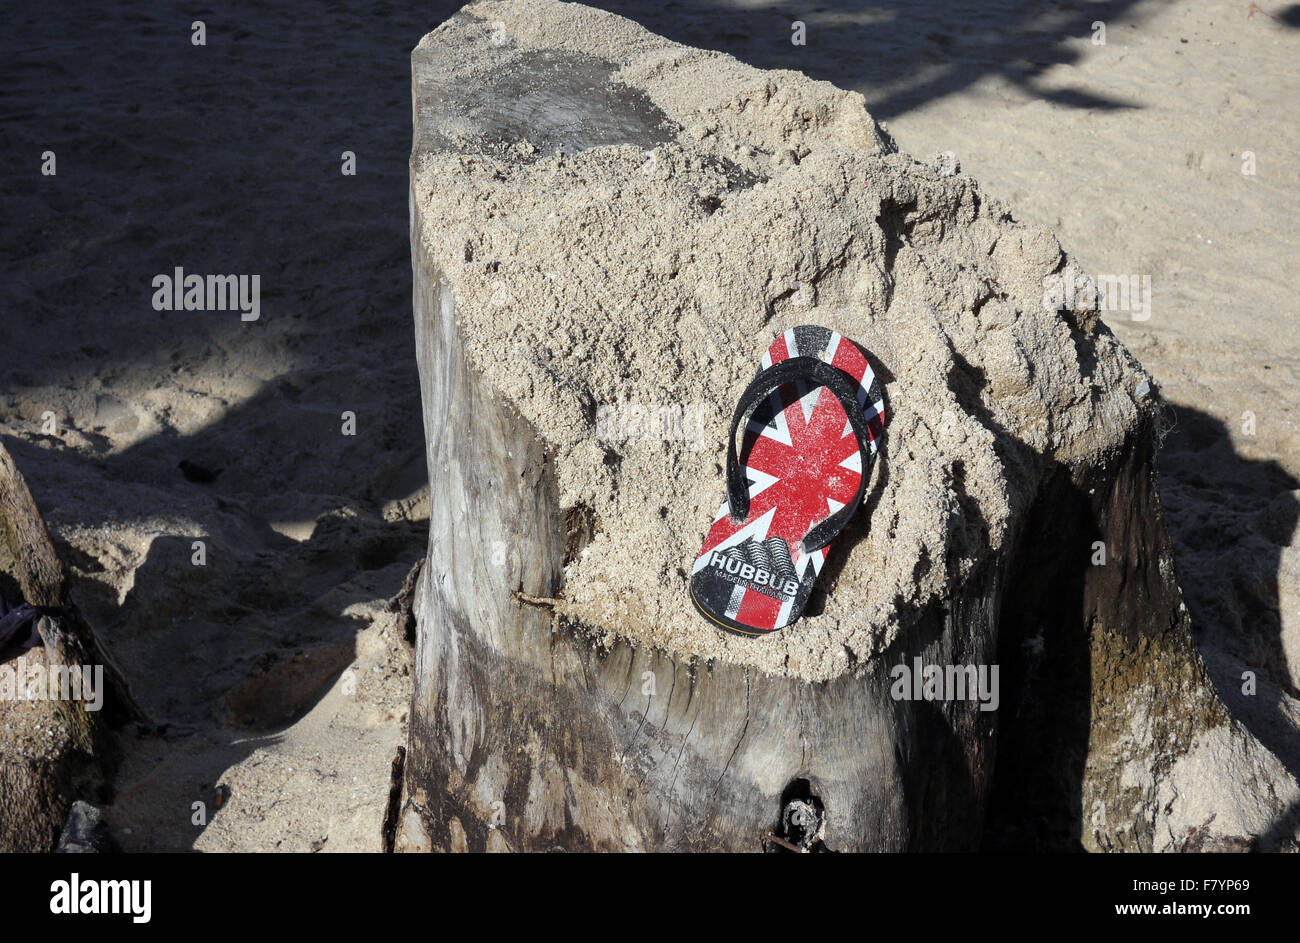 A single sandal with a GB UK Union Jack Flag design found resting on a sand covered tree stump on the beach in Pattaya - Stock Image